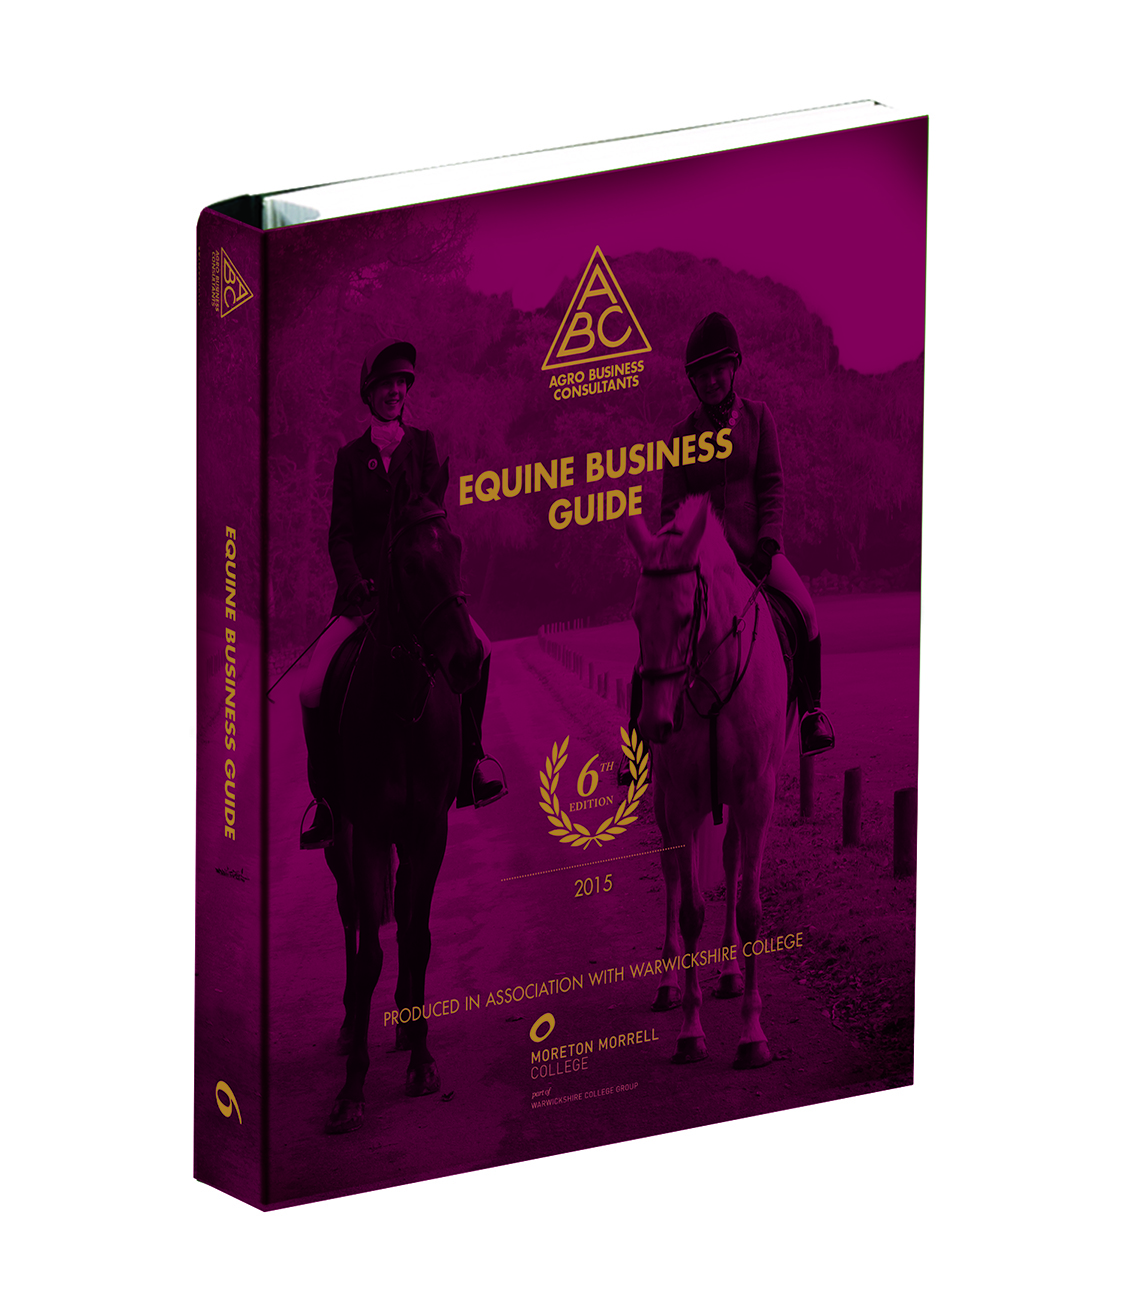 Equine Business Guide Mockup new cover